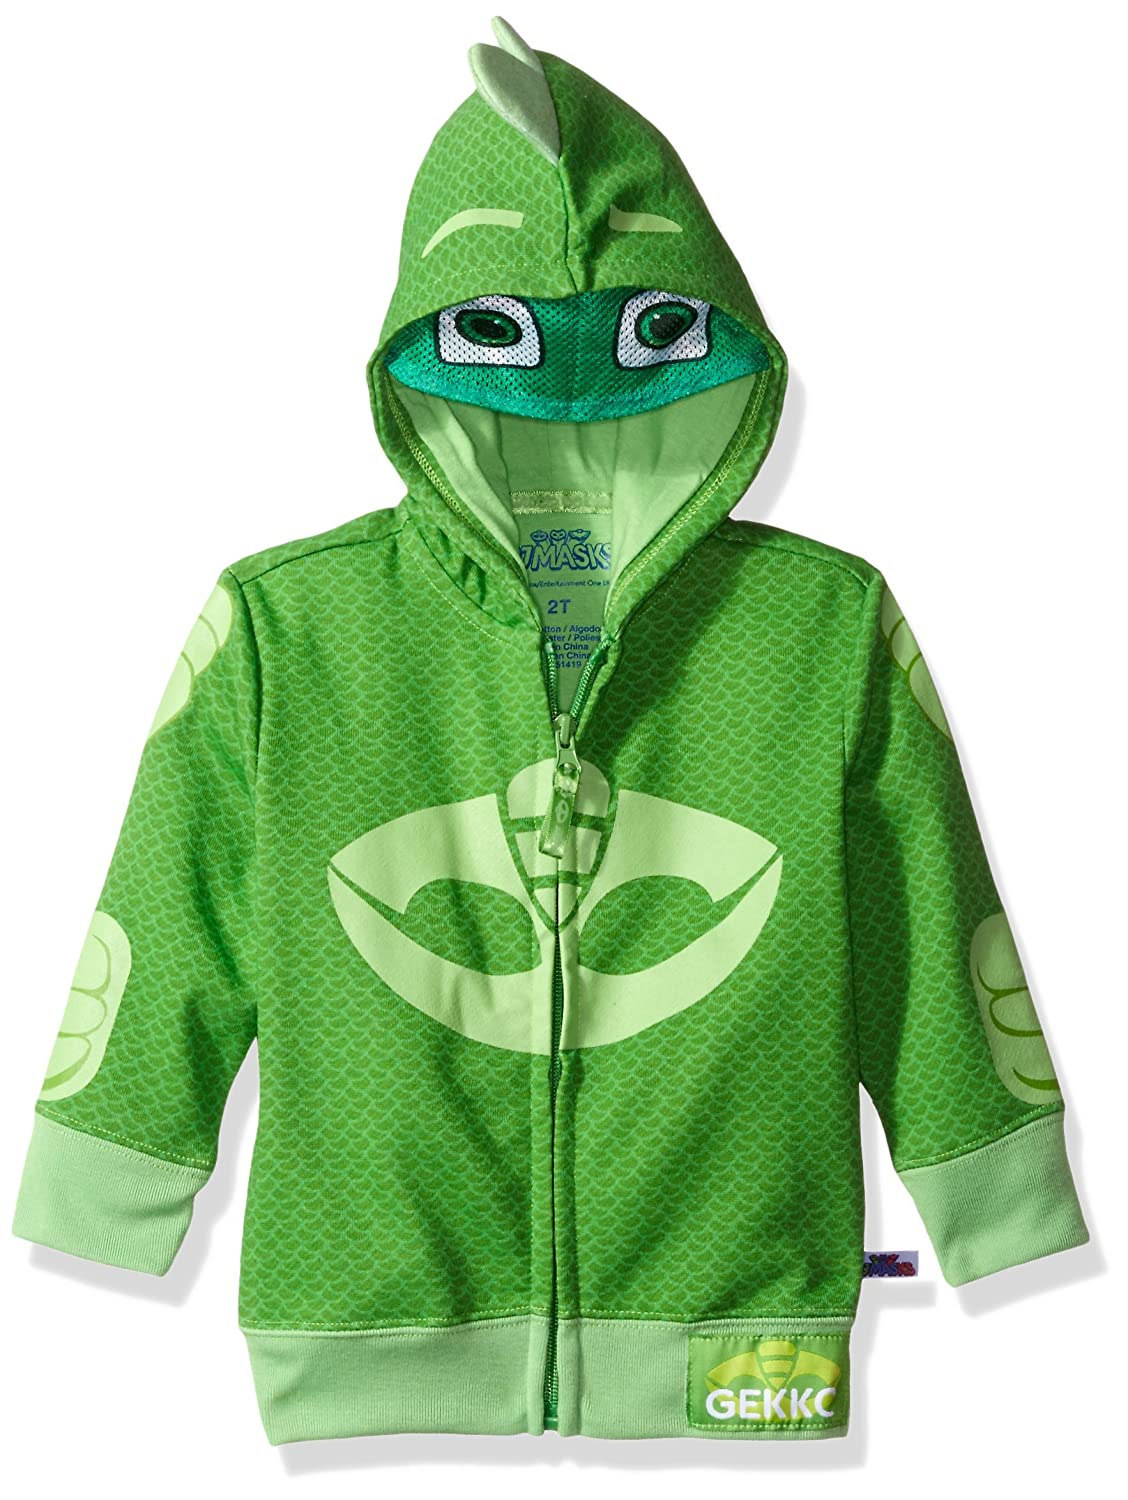 PJ Masks Gekko Toddler Boy's Zip-Up Mask Hoodie PJST014